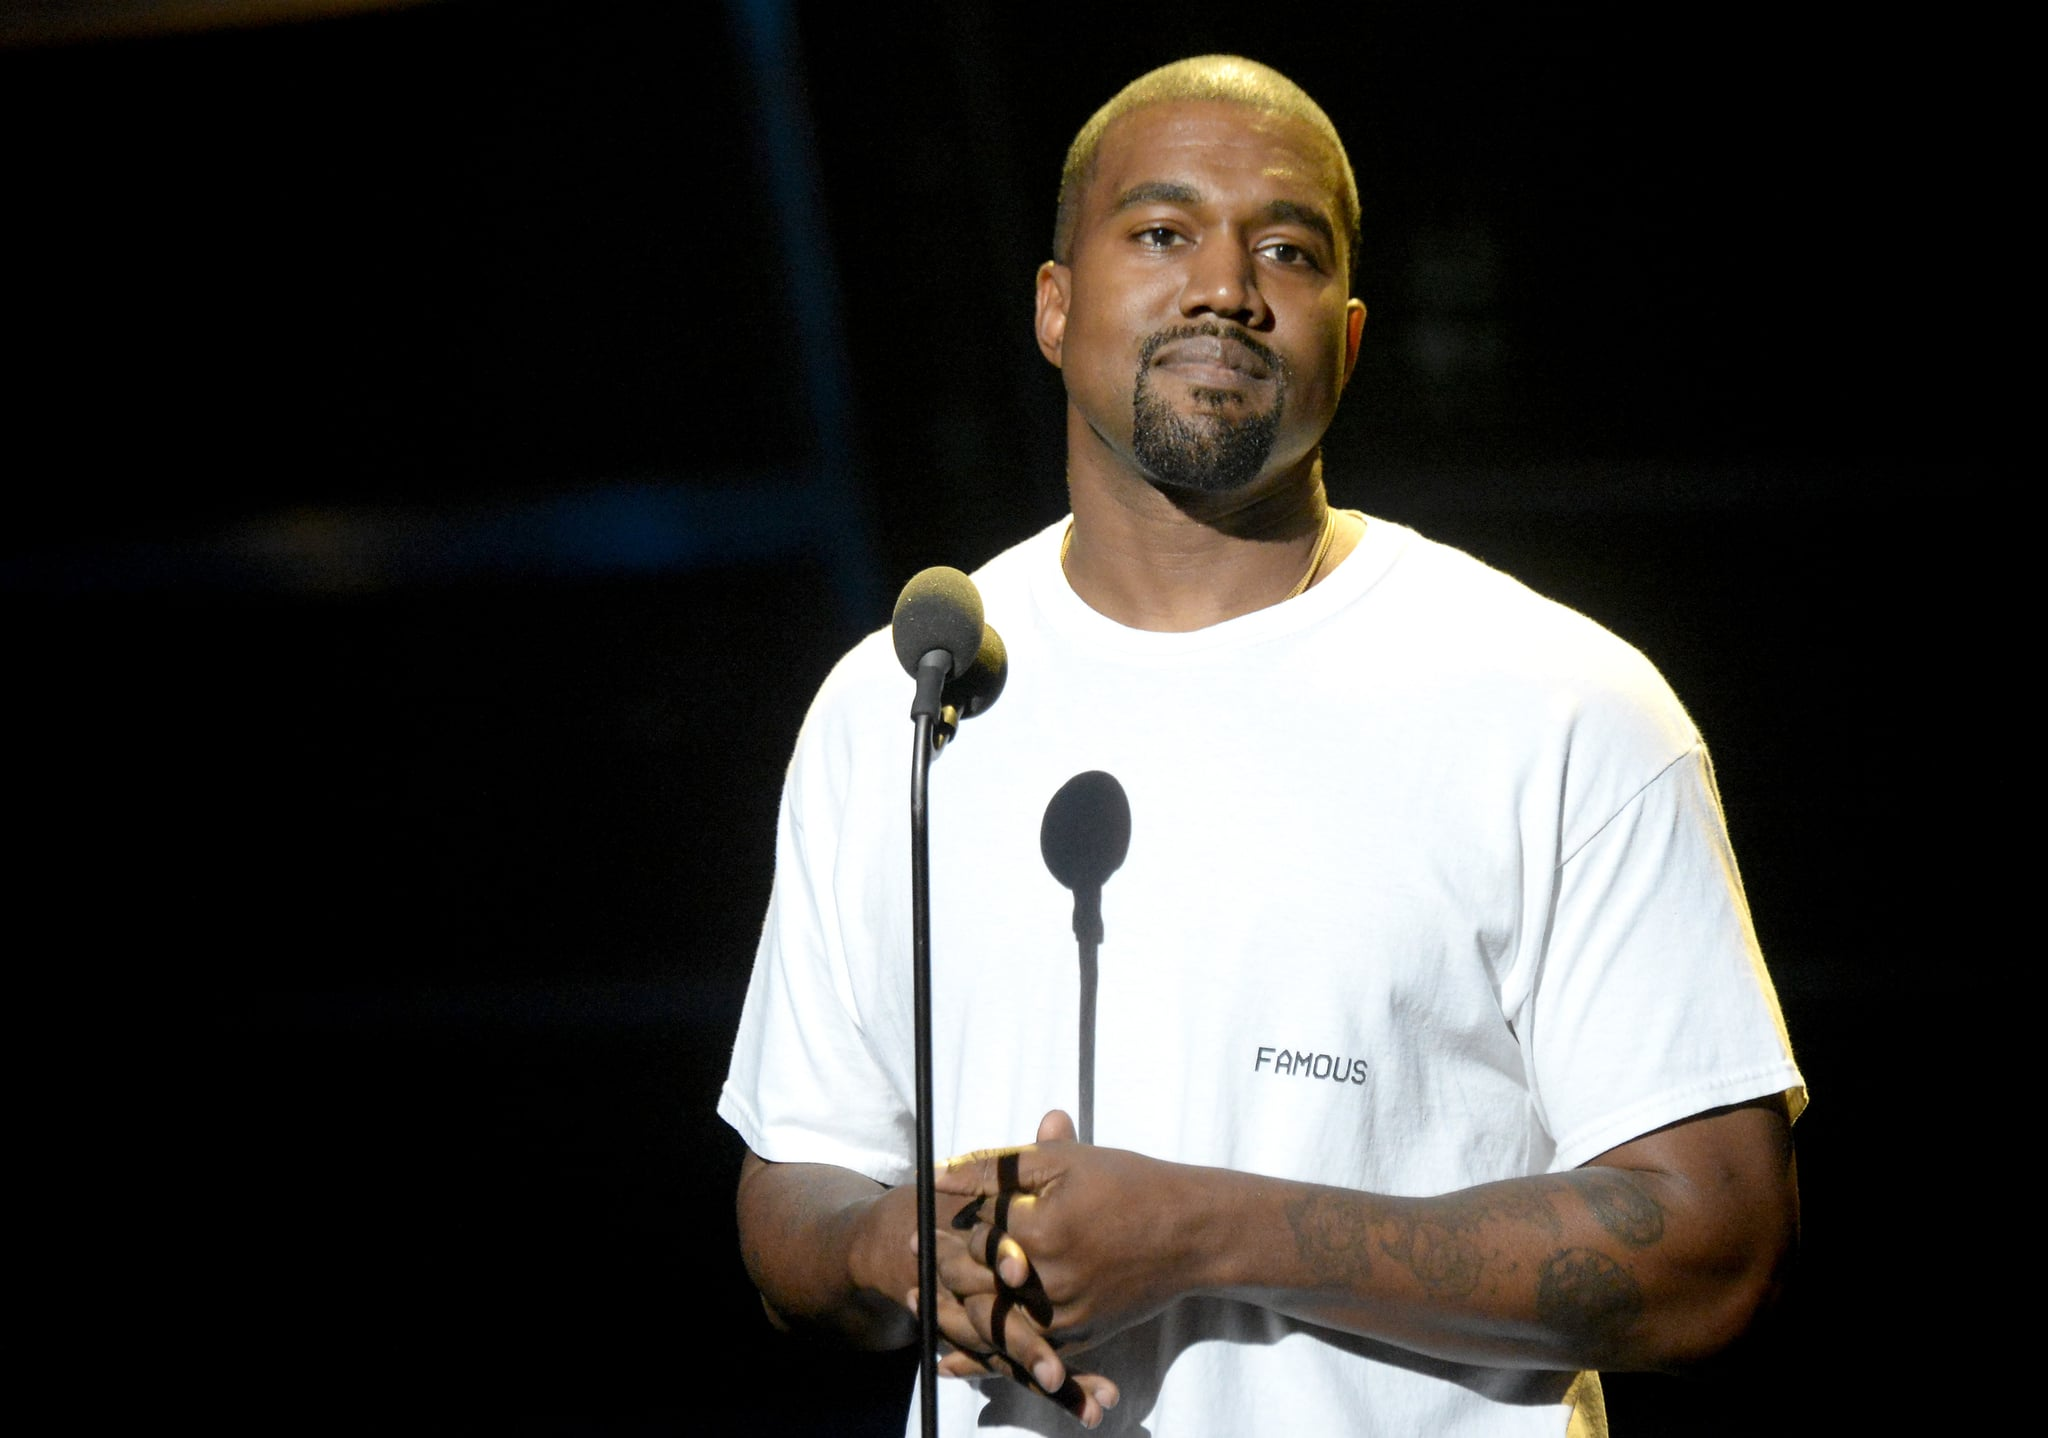 Kanye West With Blond Hair 2016 Popsugar Beauty